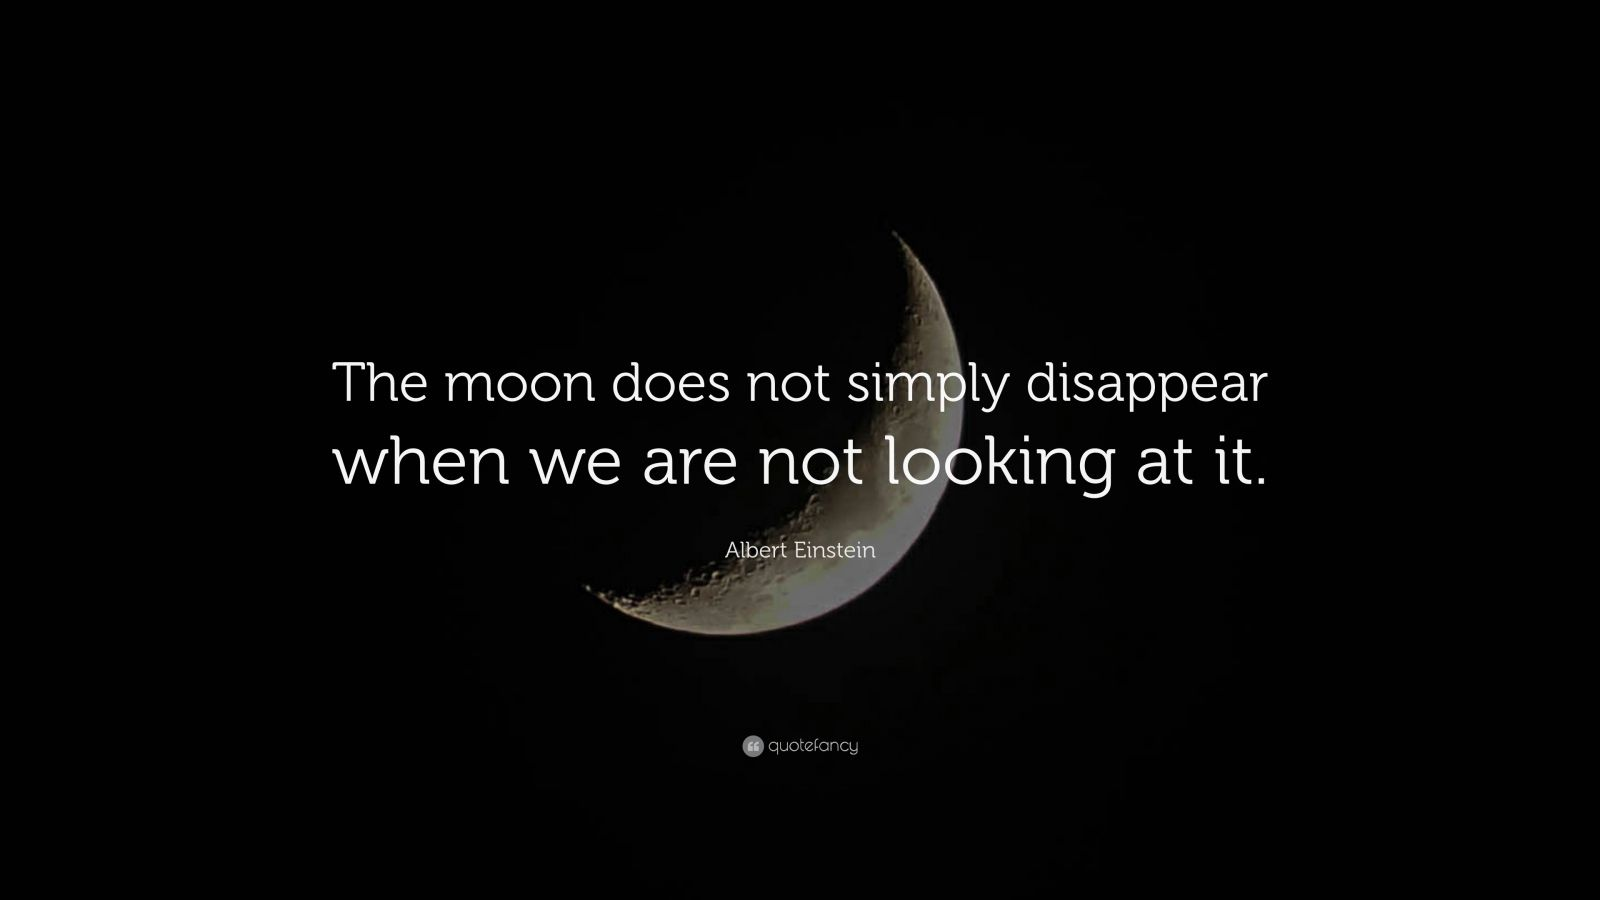 Physique quantique for dummies - Page 6 124113-Albert-Einstein-Quote-The-moon-does-not-simply-disappear-when-we